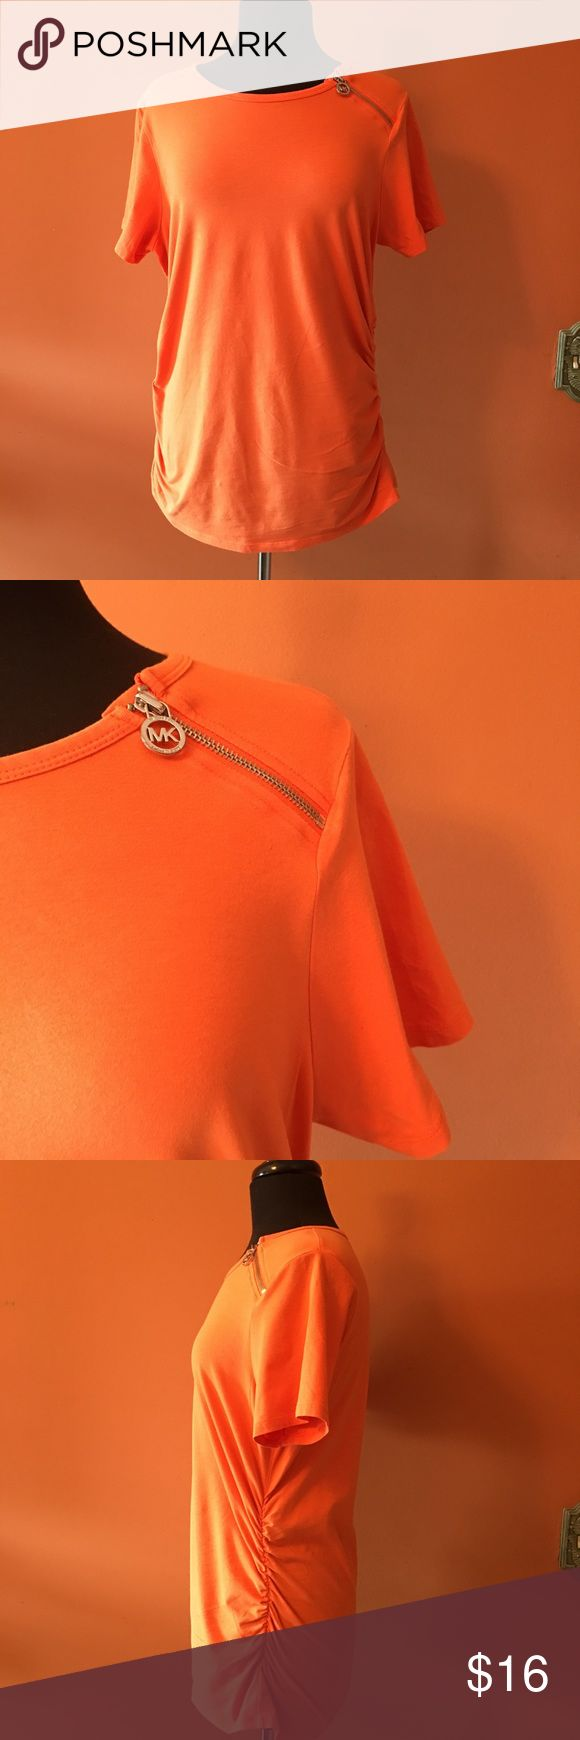 MICHAEL Michael Kors Orange Zipper Tshirt Cute orange plus size top in good condition, subtle ruching and one shoulder zipper, size 1X MICHAEL Michael Kors Tops Tees - Short Sleeve